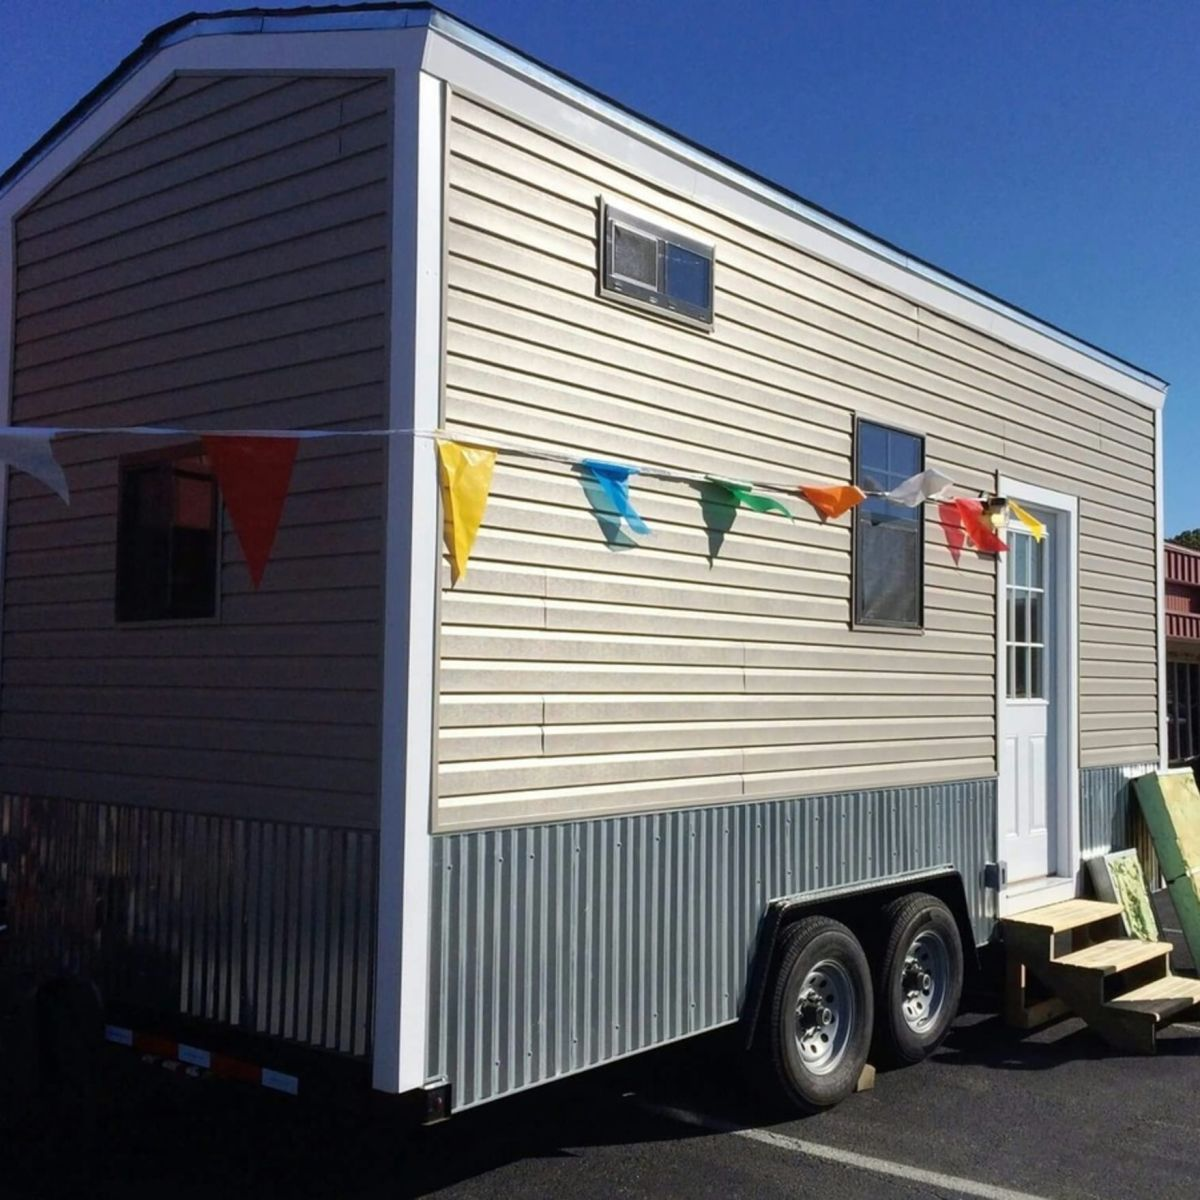 Tiny Home Designs: Tiny House For Sale In Fort Worth, Texas